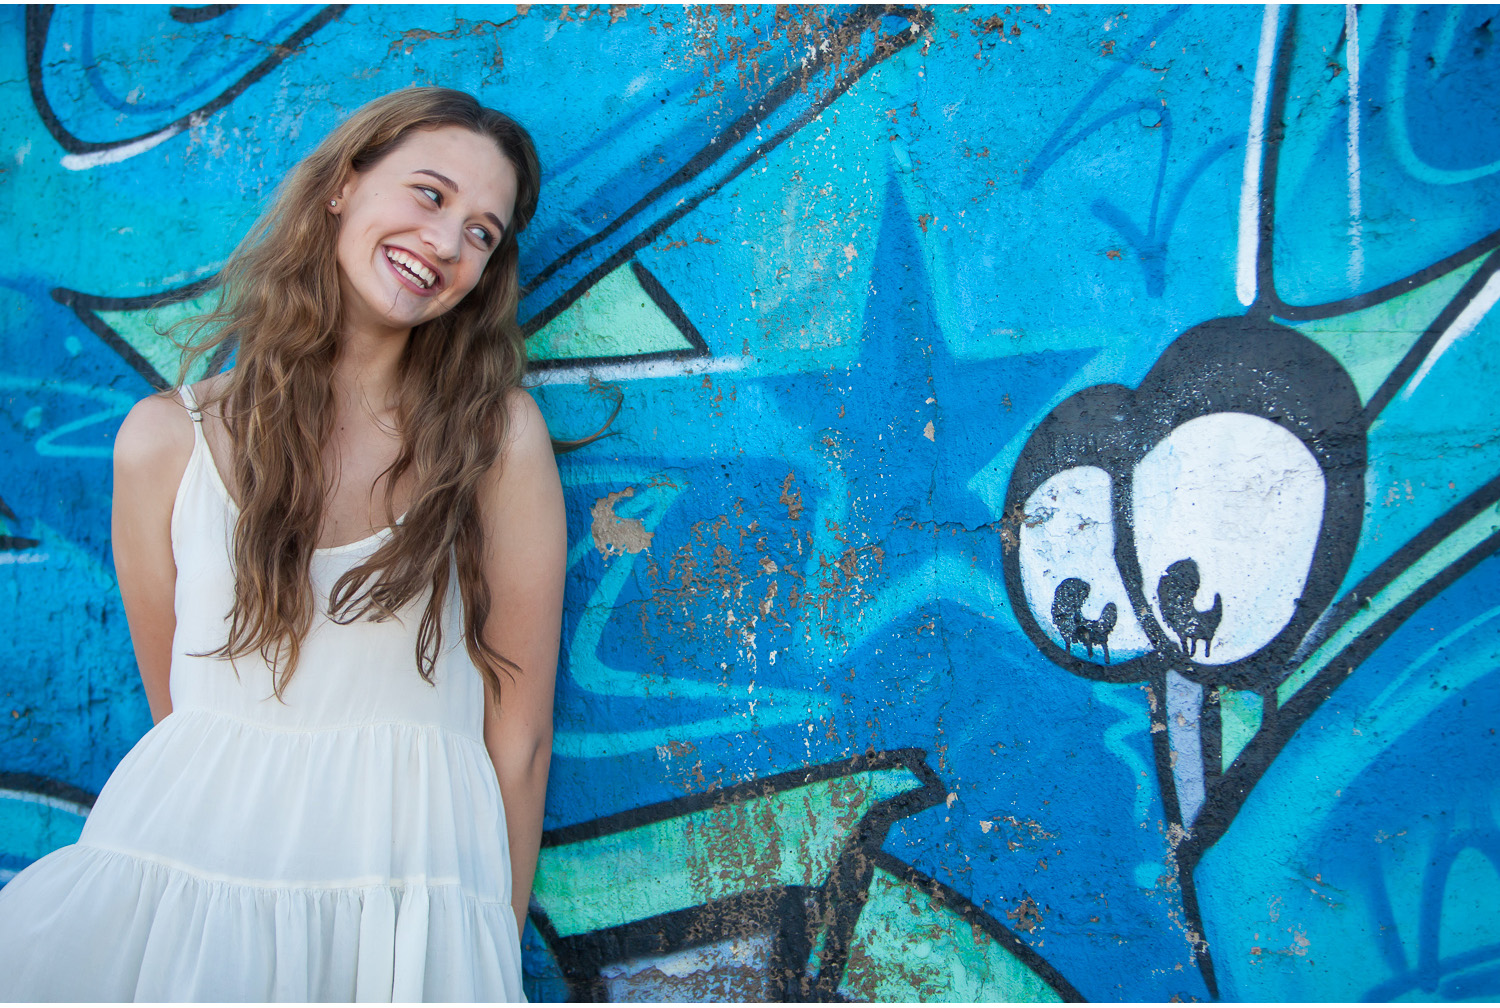 Denver high school senior pictures, gorgeous Maddie smiling at graffiti eyes | photographer Jennifer Koskinen | Merritt Portrait Studio